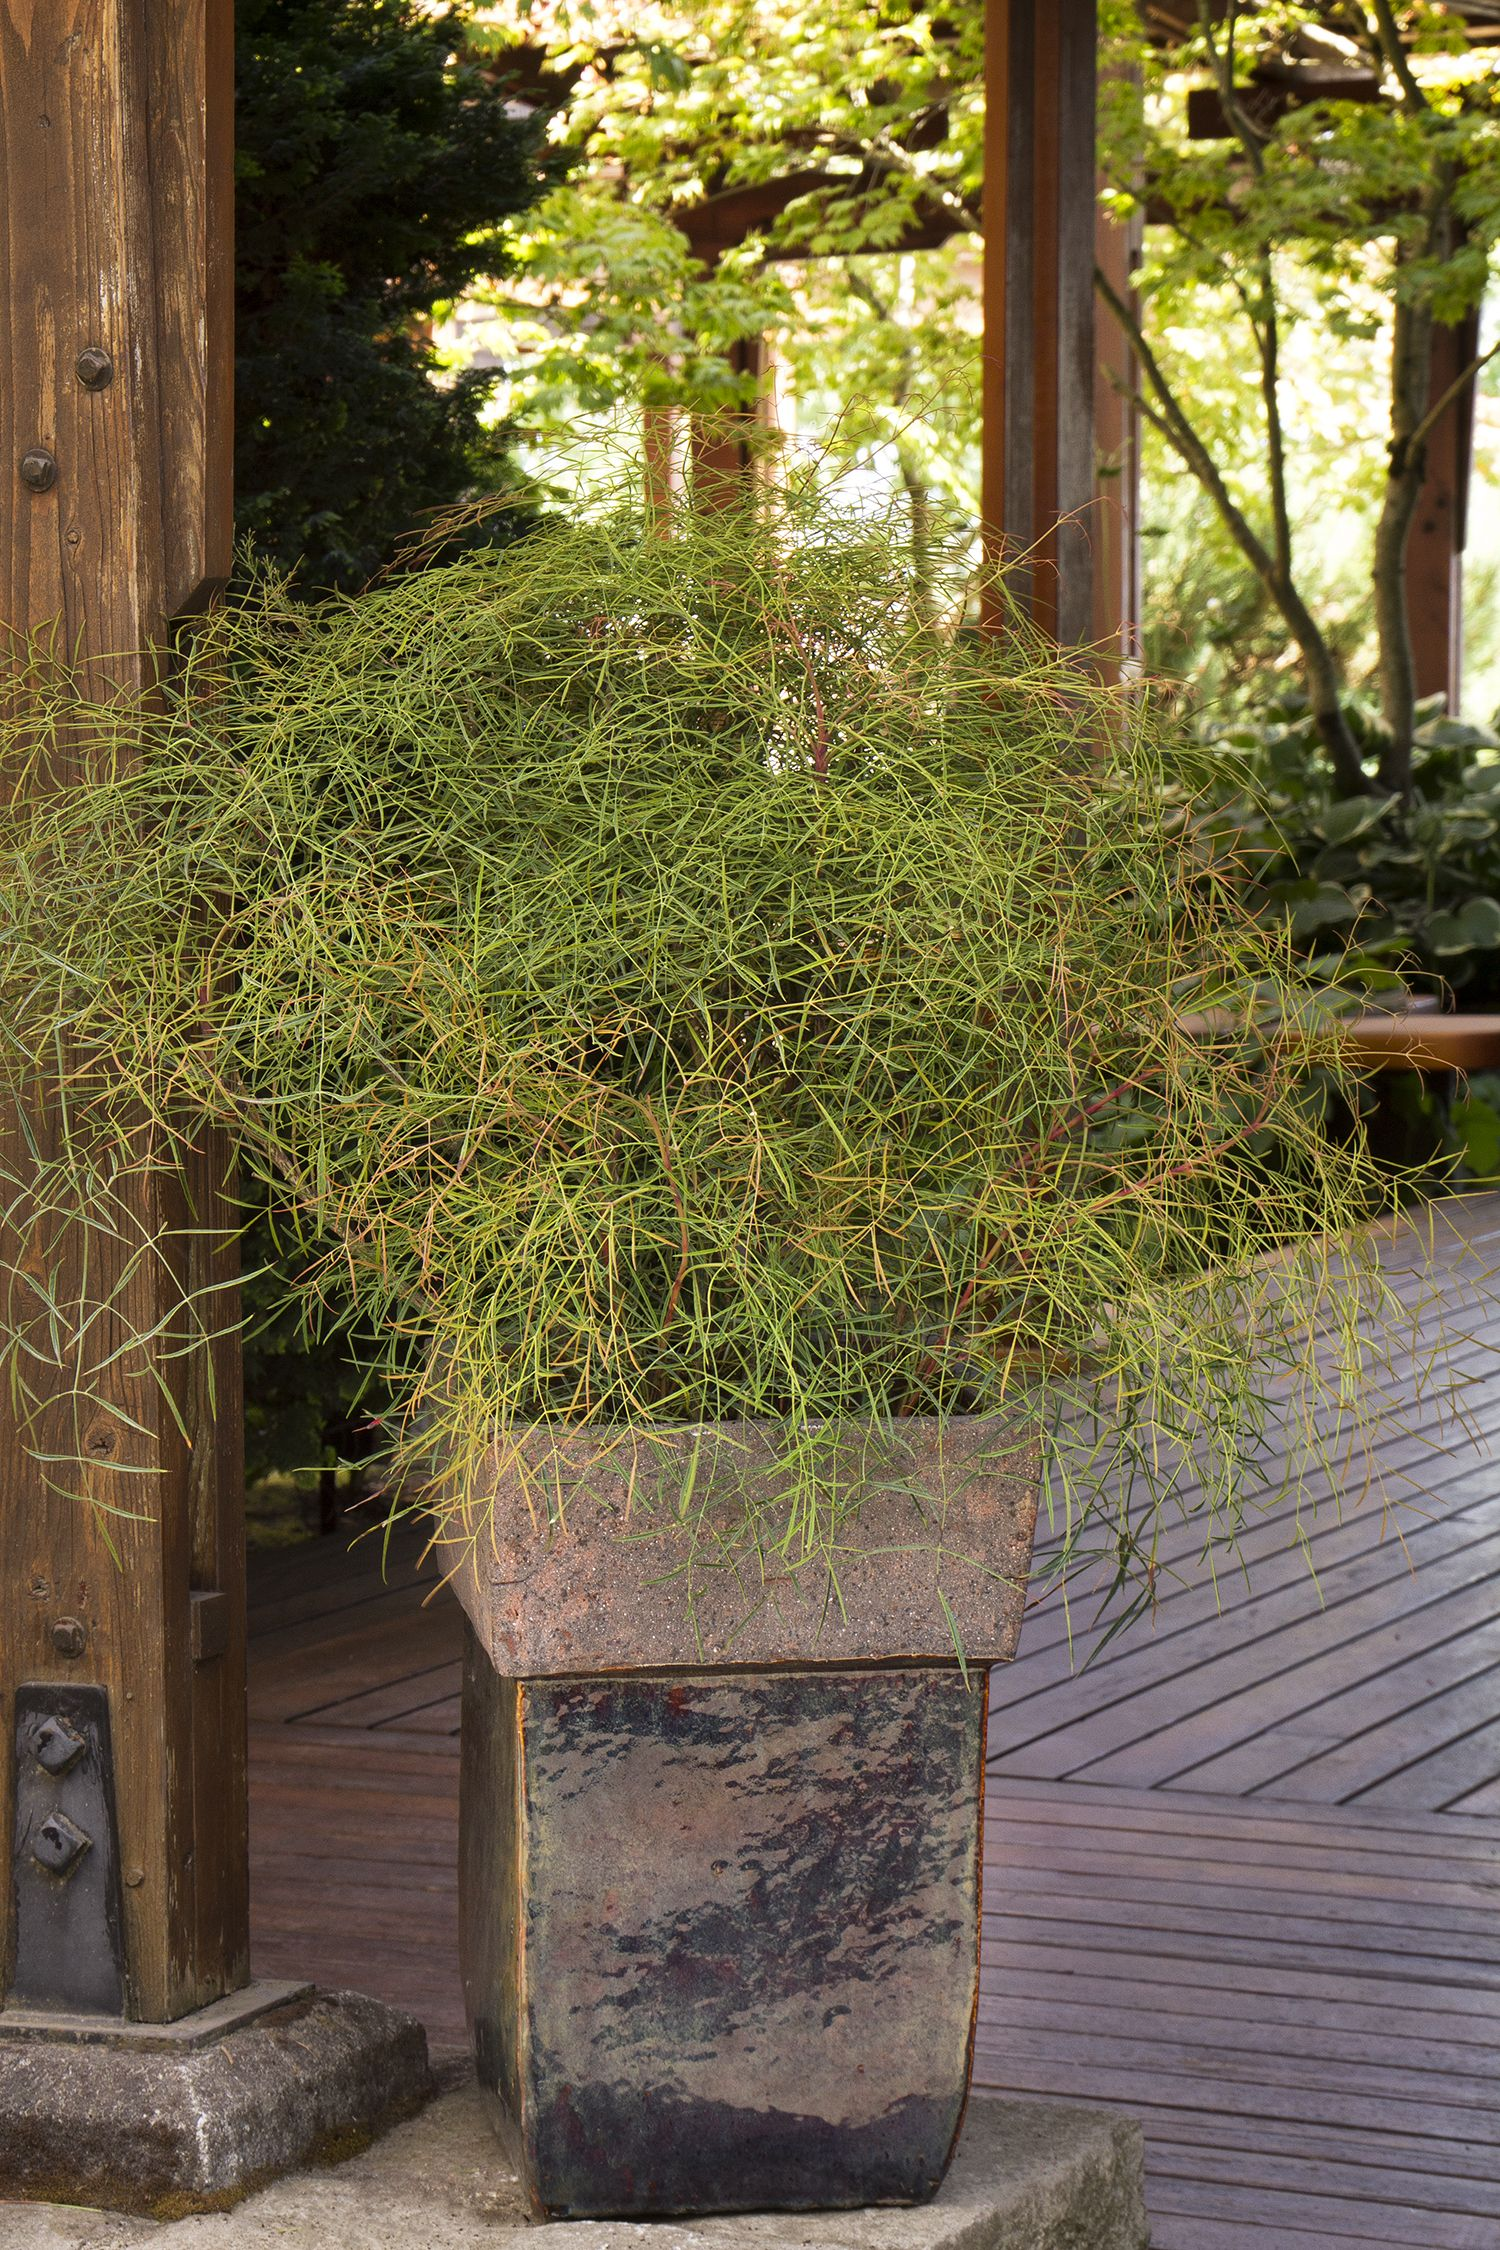 Chime heavenly bamboo monrovia chime heavenly bamboo for Container maison legislation